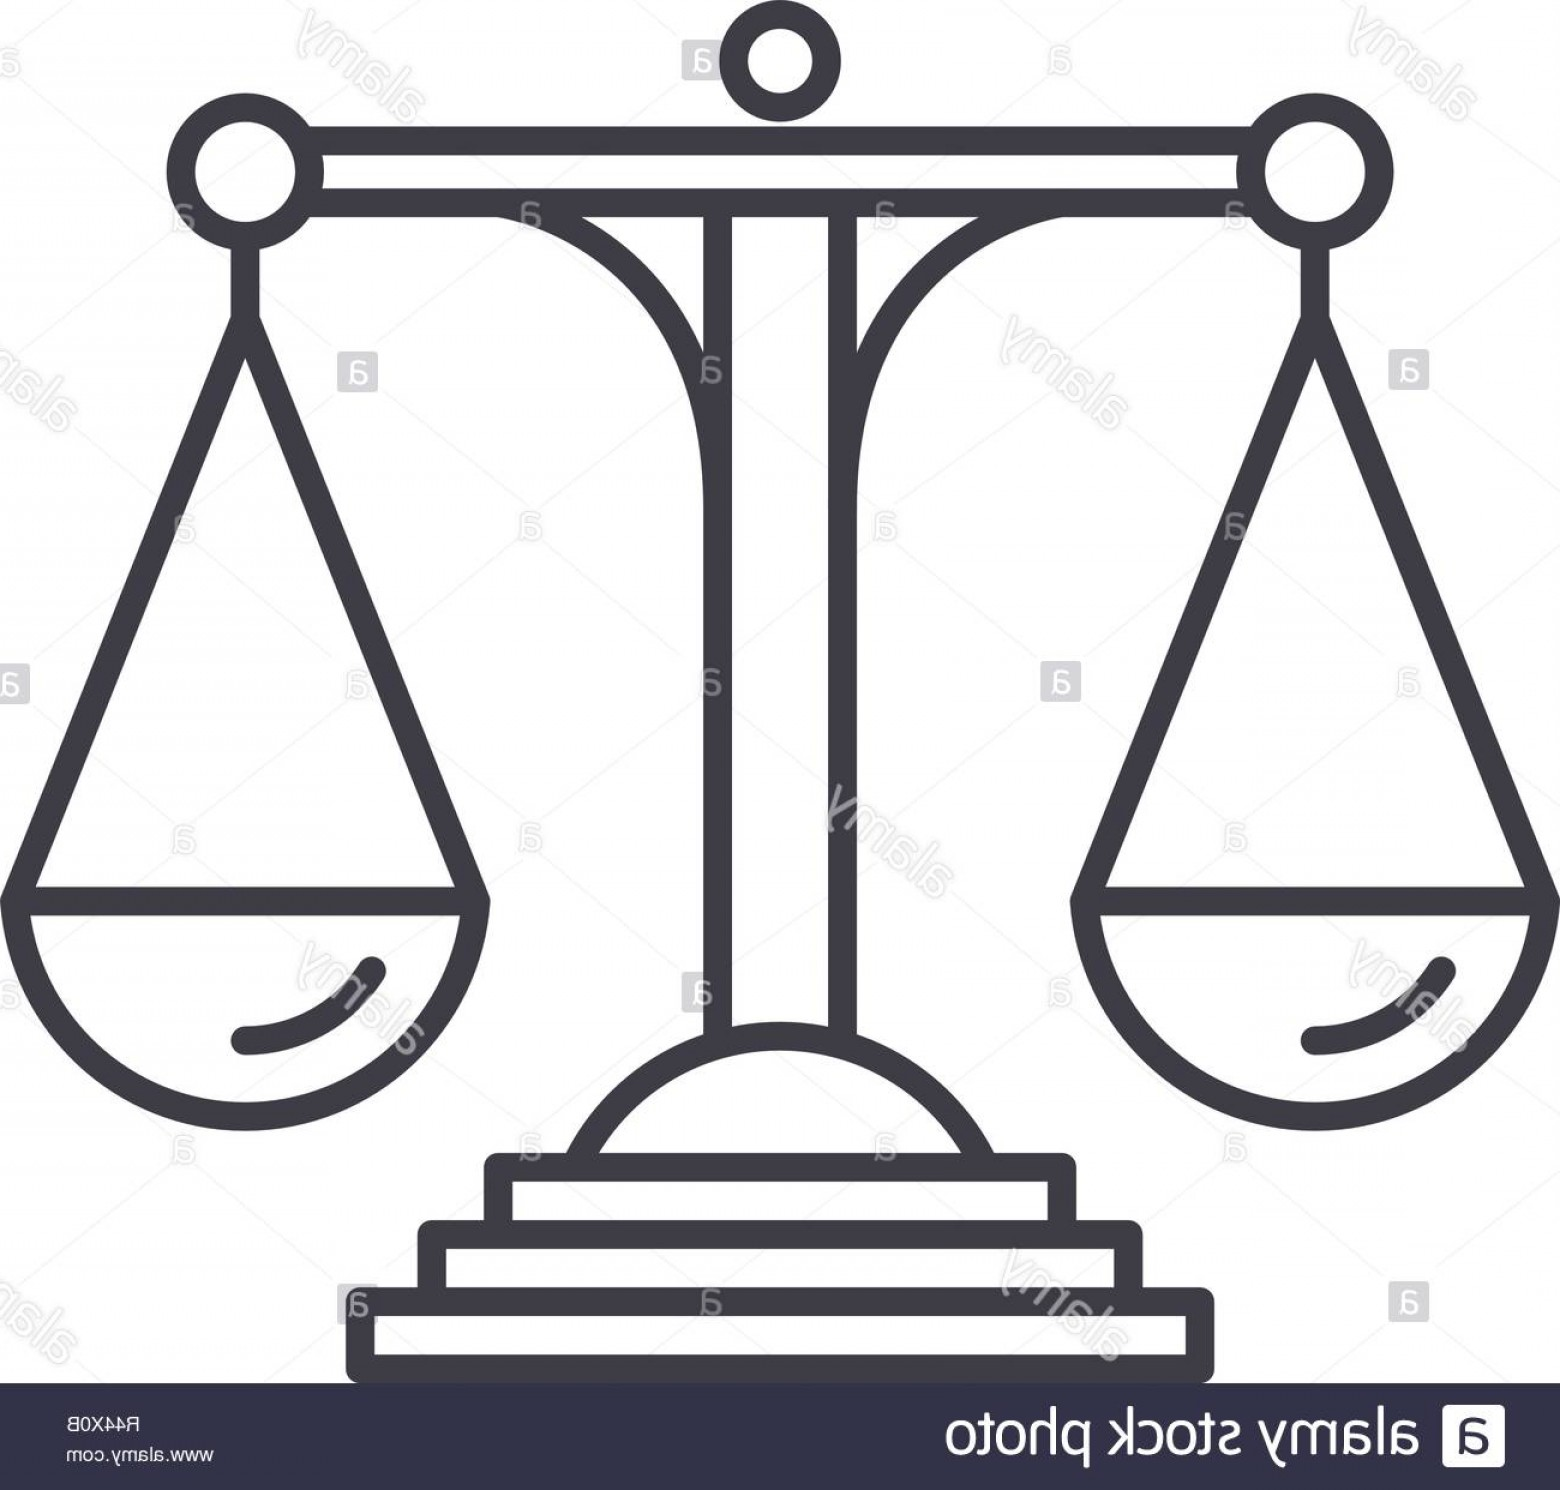 Scales Of Justice Vector: Scales Of Justice Line Icon Concept Scales Of Justice Vector Linear Illustration Symbol Sign Image